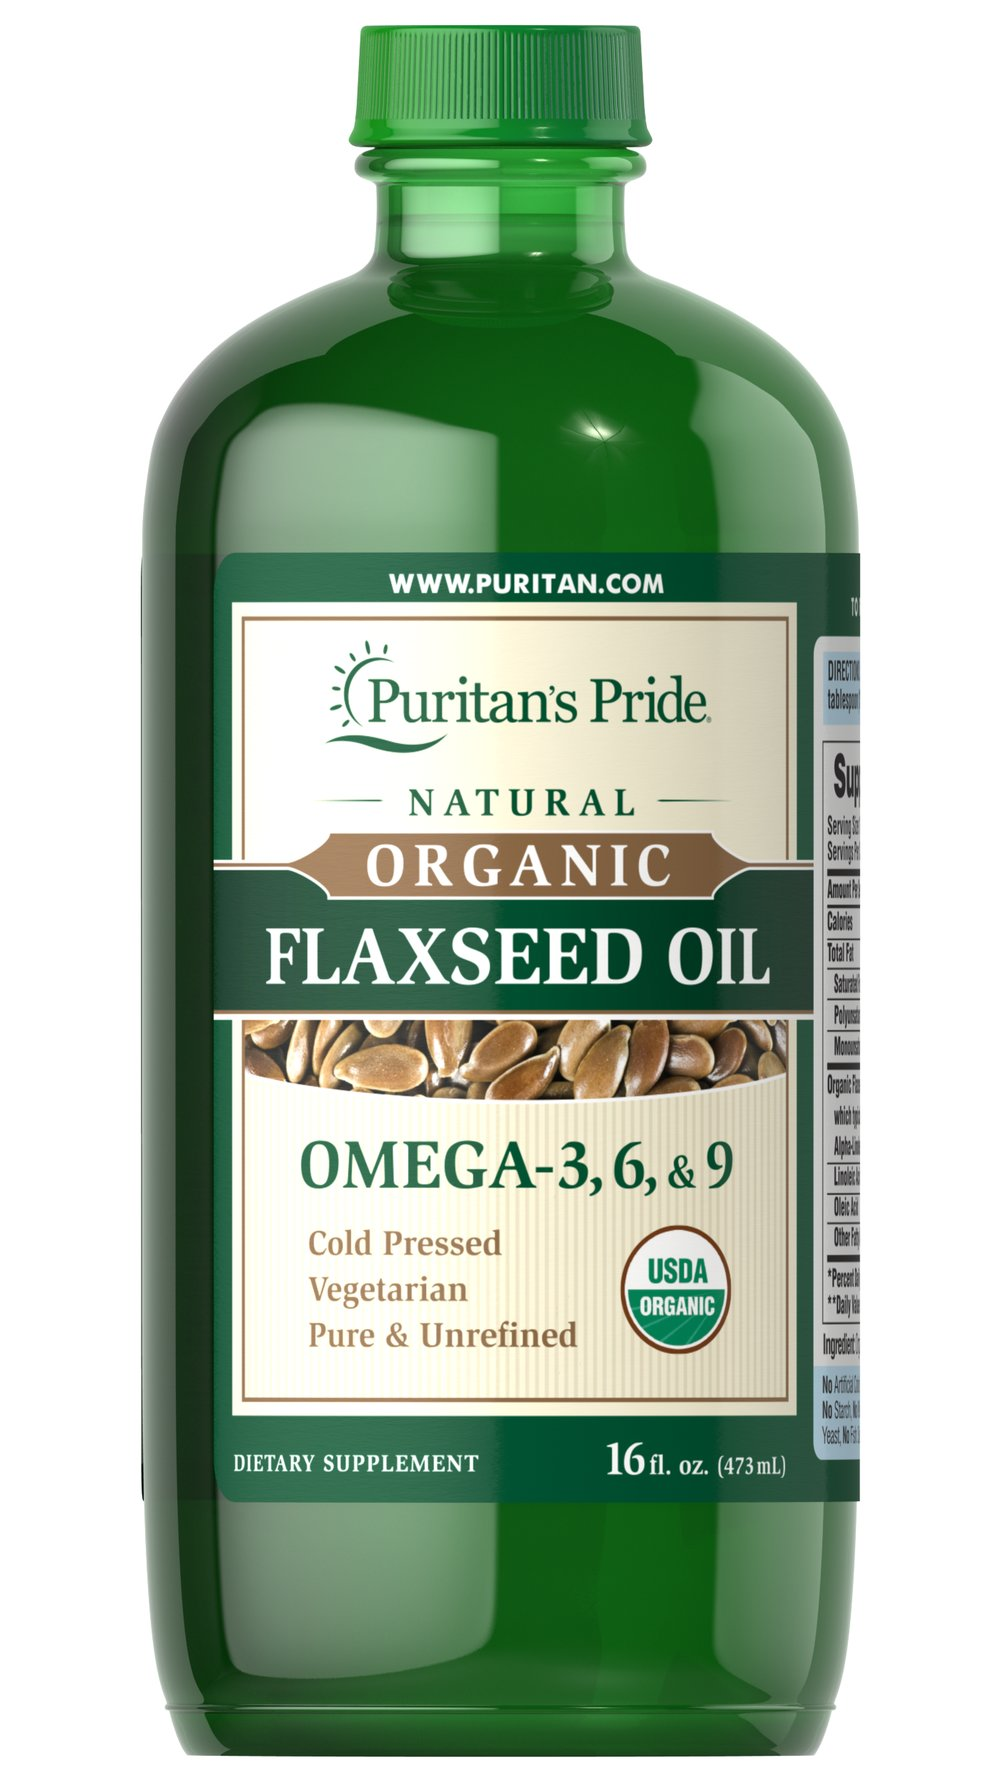 Organic Flaxseed Oil Thumbnail Alternate Bottle View